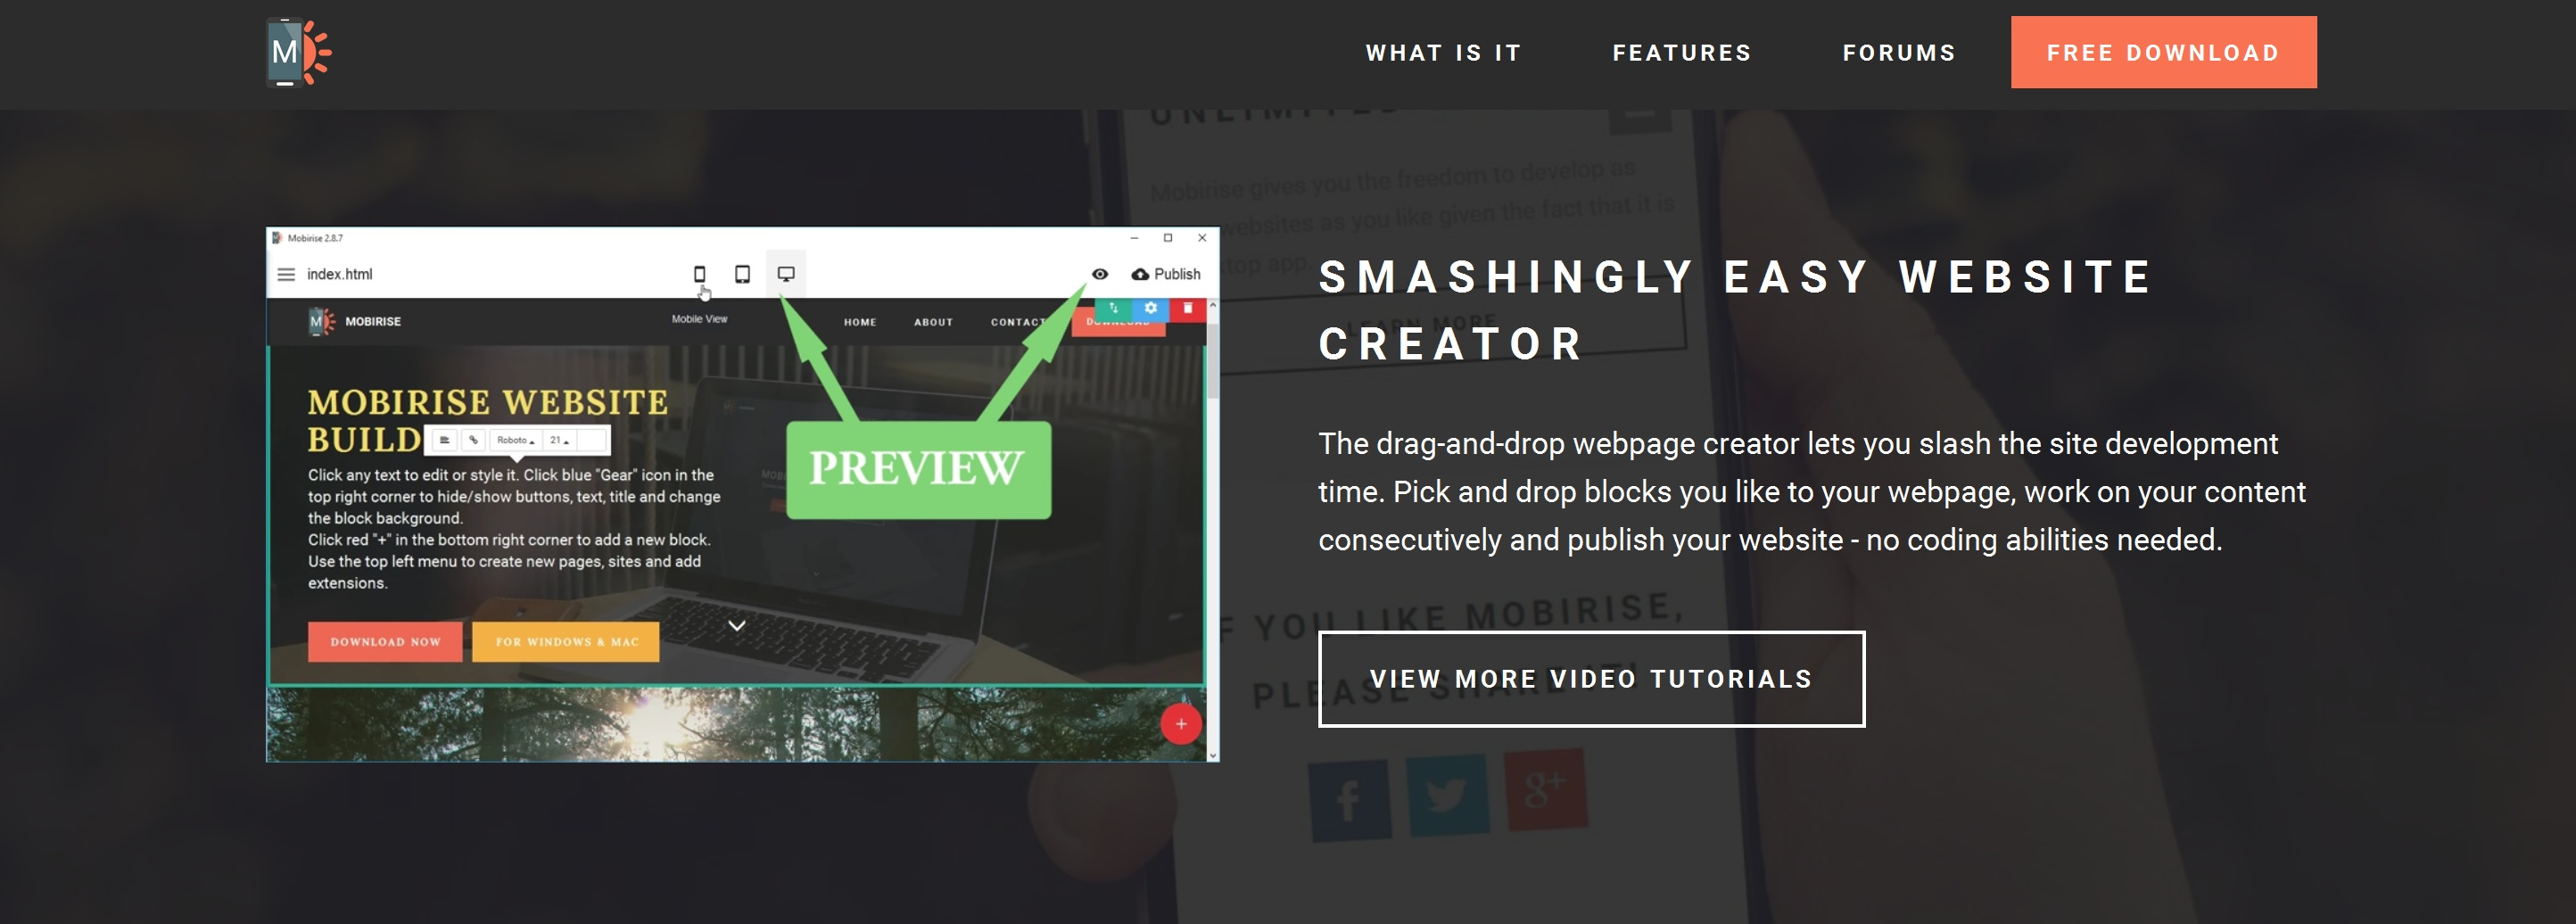 Very Simple Website Creator Review